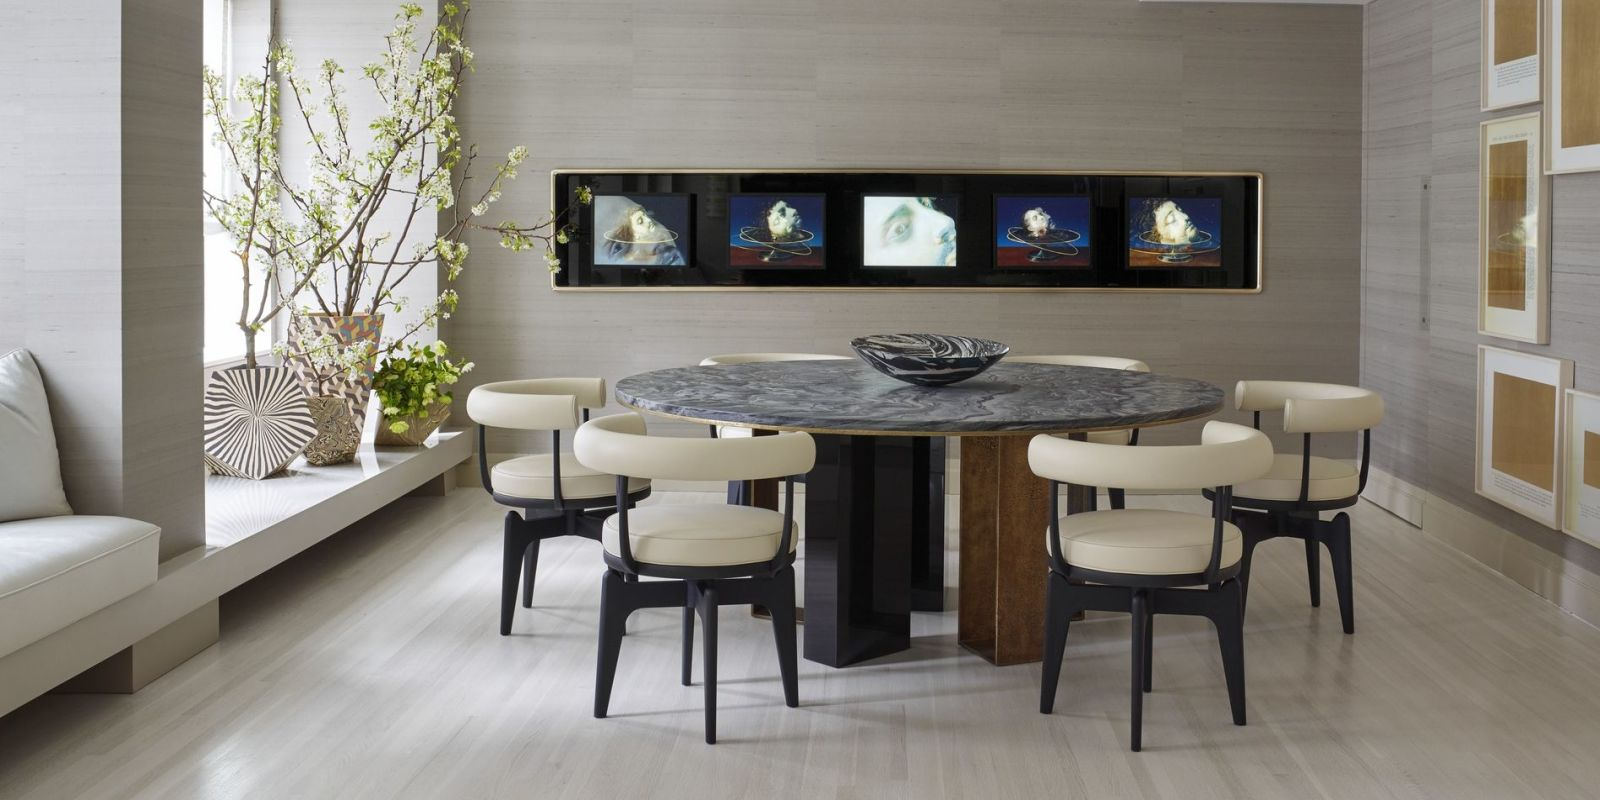 25 modern dining room decorating ideas contemporary for Modern dining room 2016